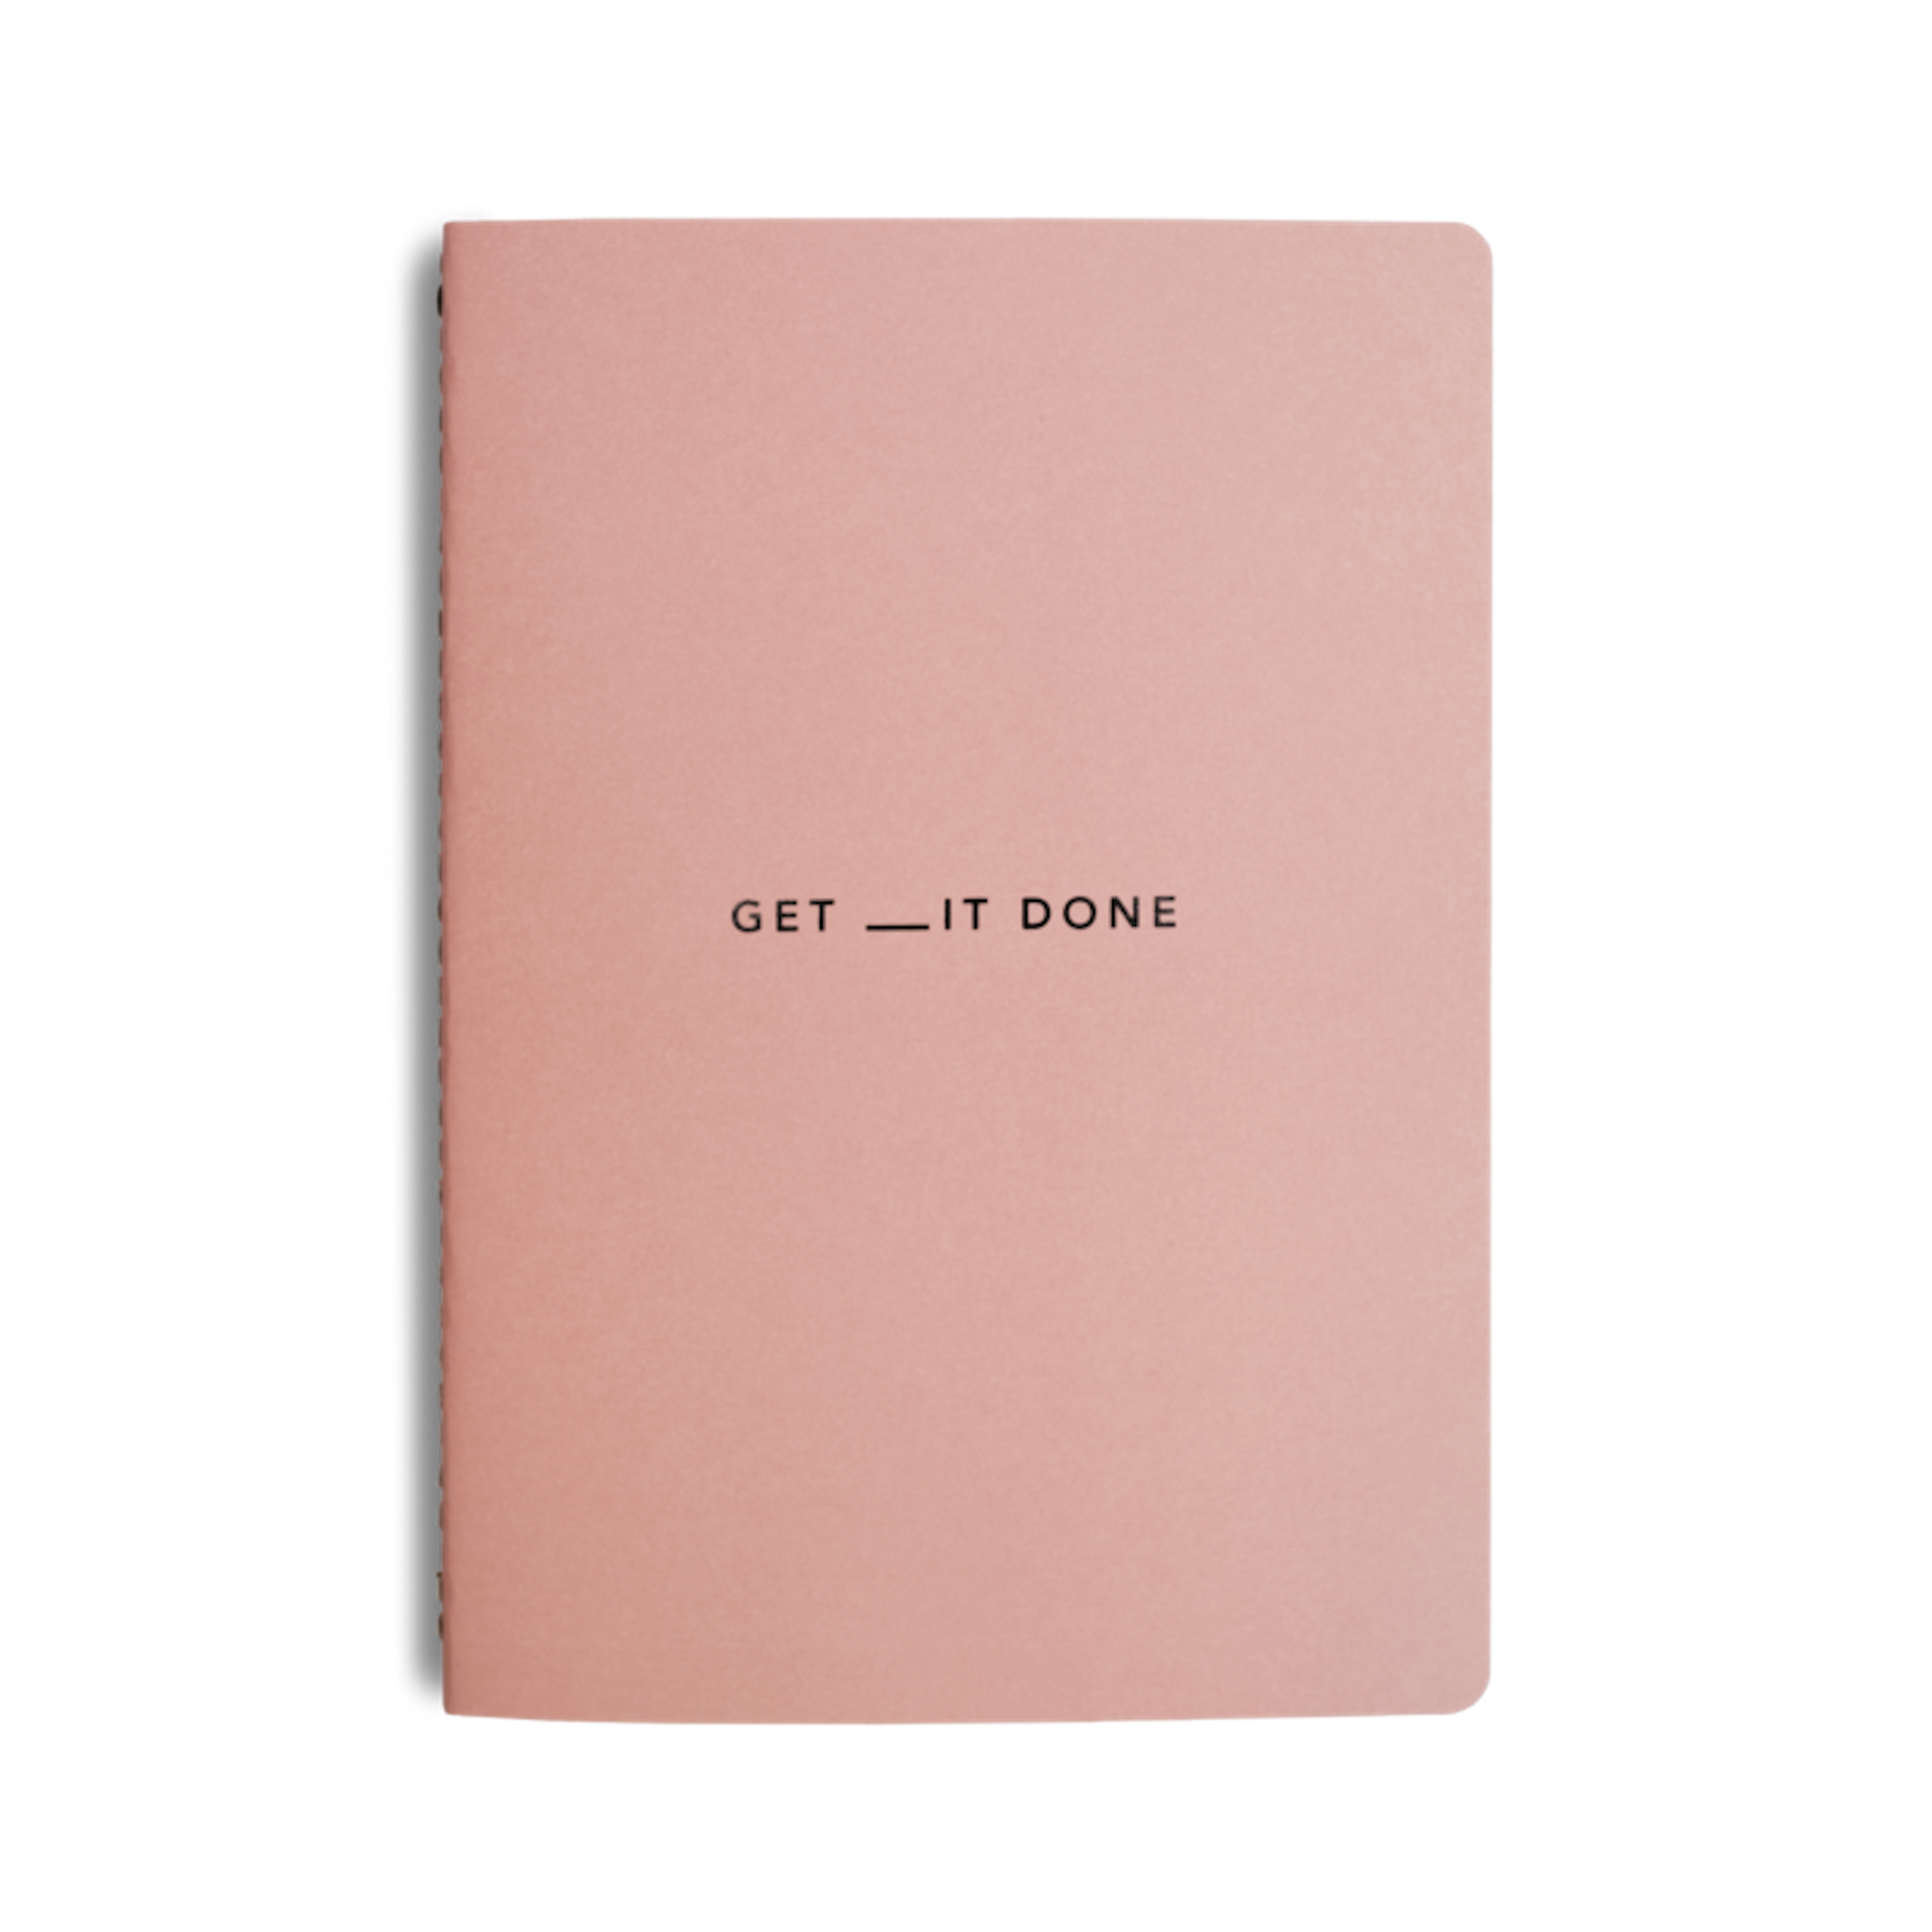 MiGoals Get__It Done Minimal A5 Notebook